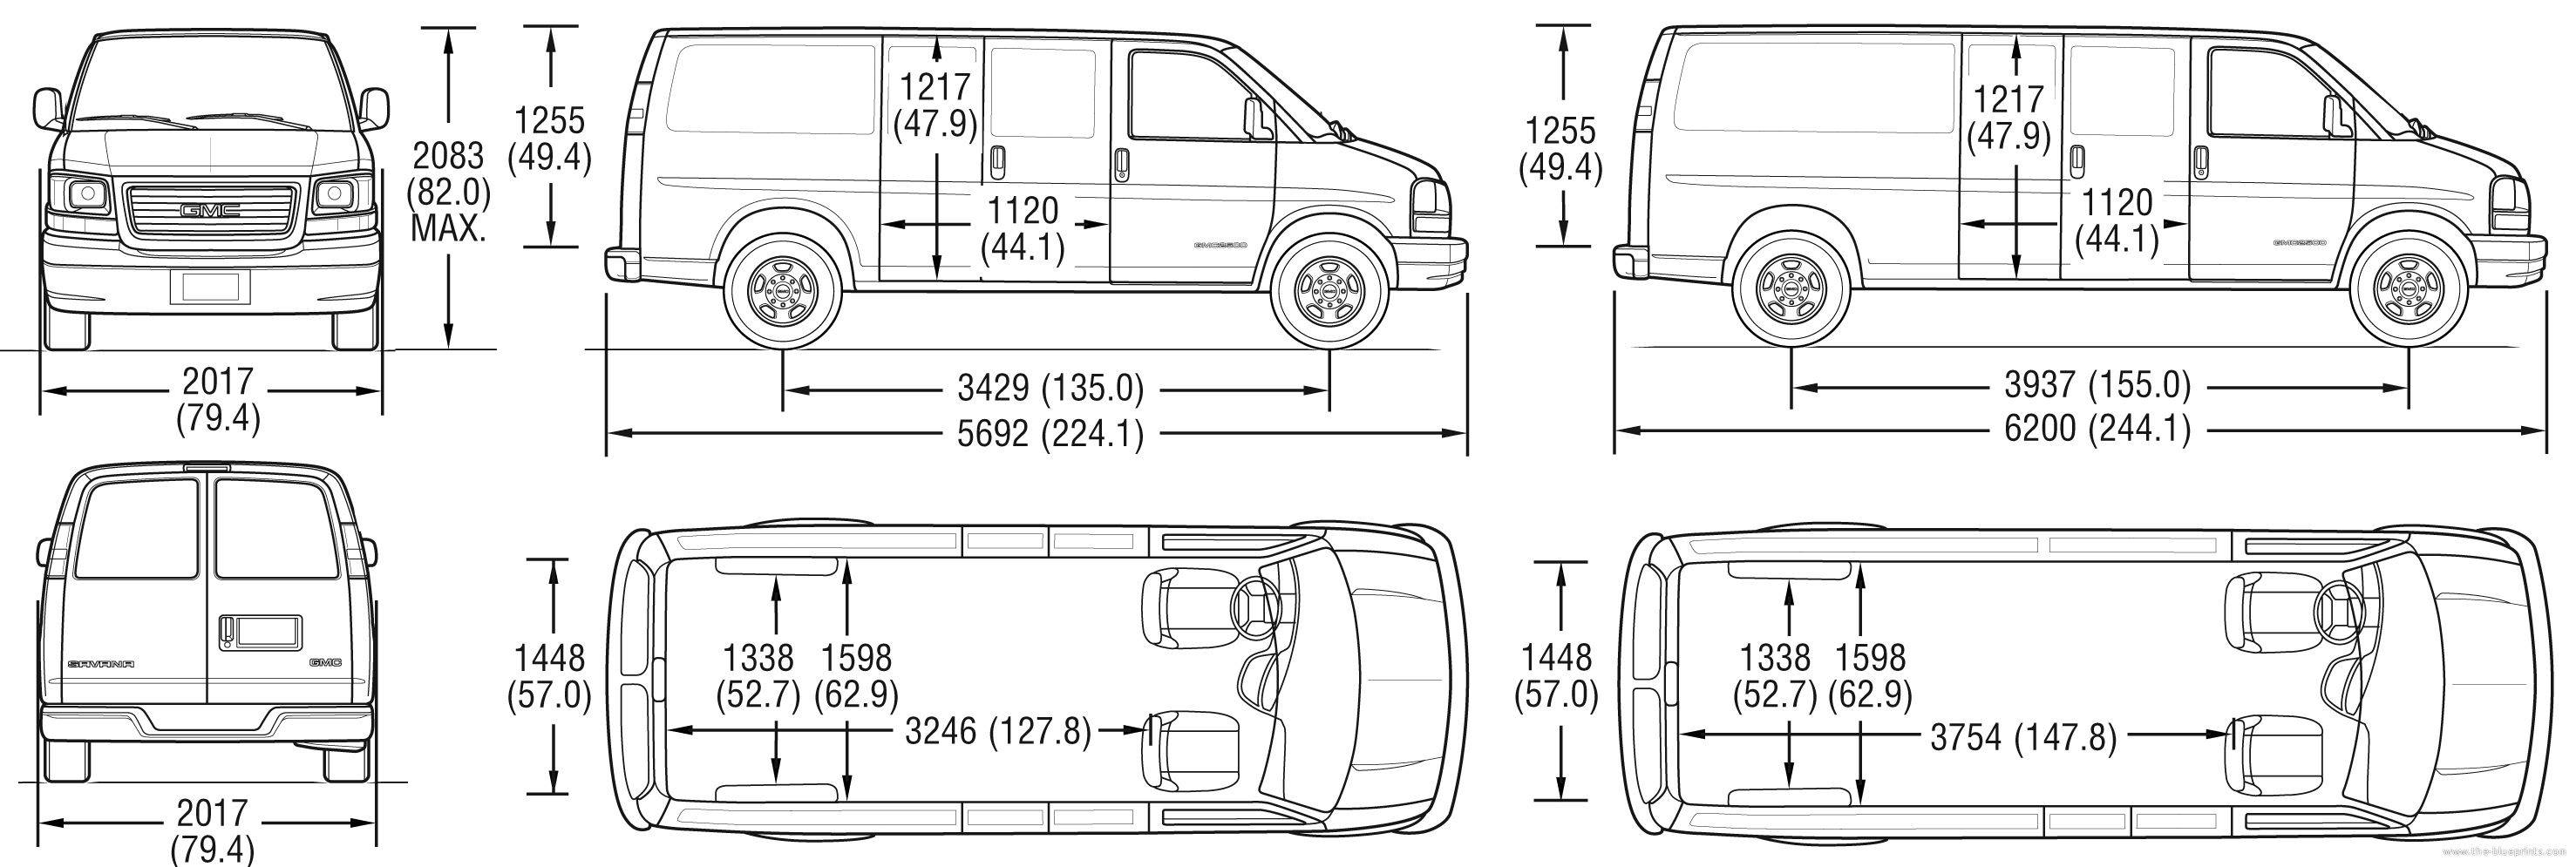 Sprinter Van Dimensions Interior Fresh Superb Cargo Van Interior